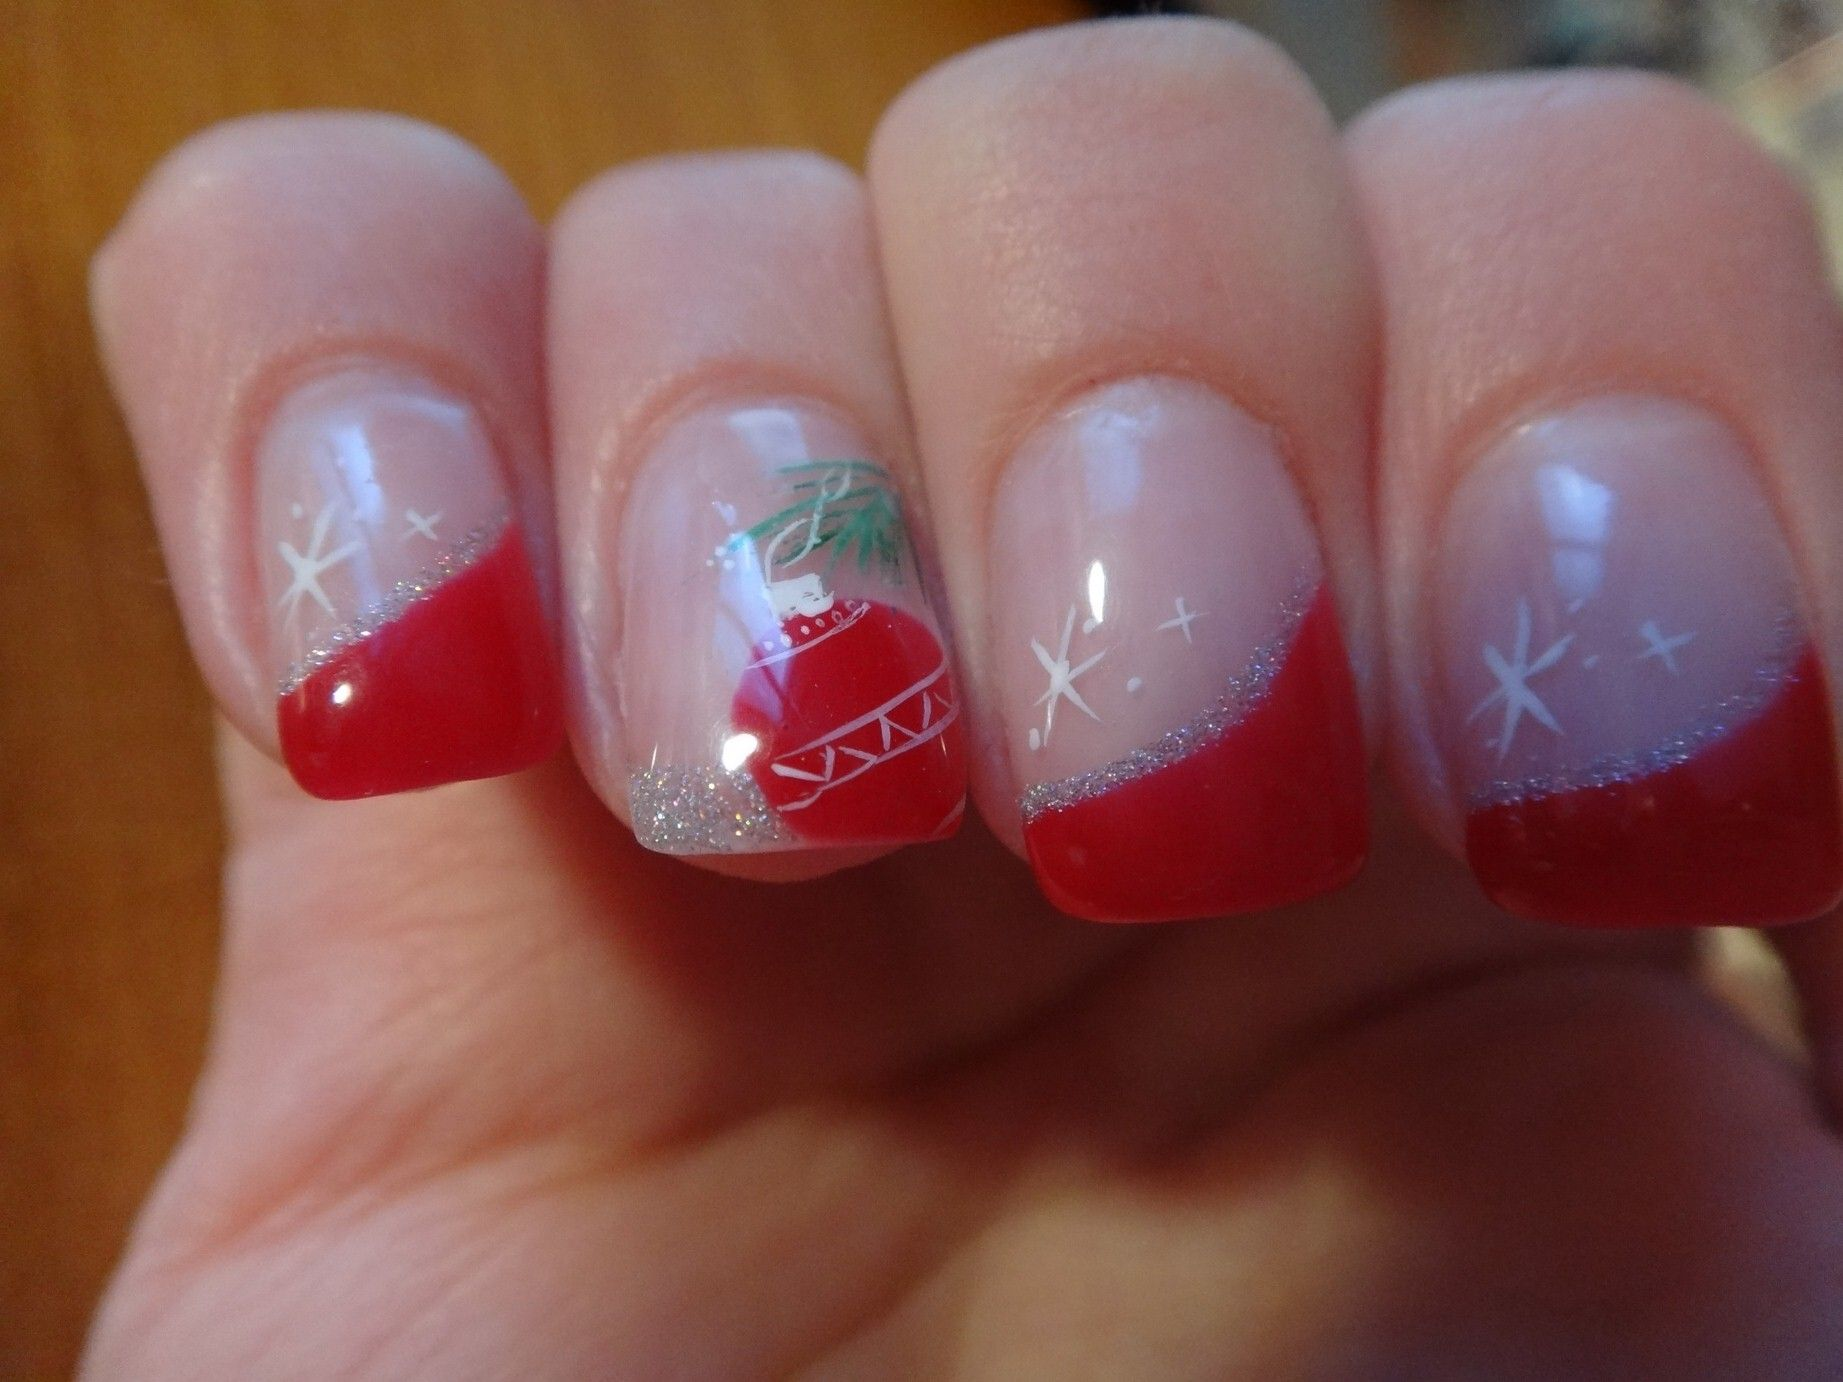 #nails #french #red #christmas #glitter #acrylicpaint